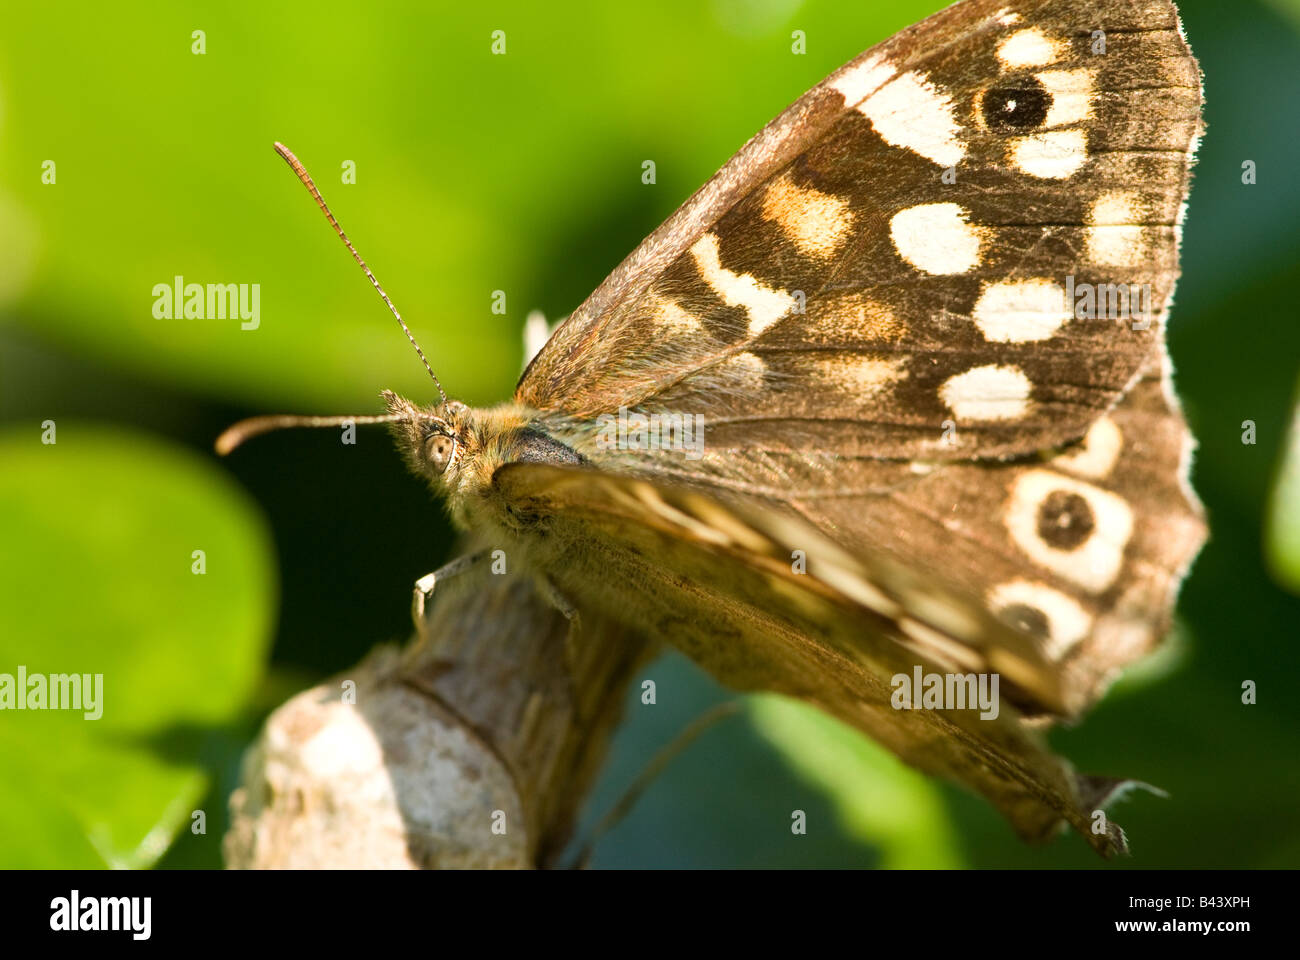 Speckled Wood Butterfly (Pararge aegeria). - Stock Image